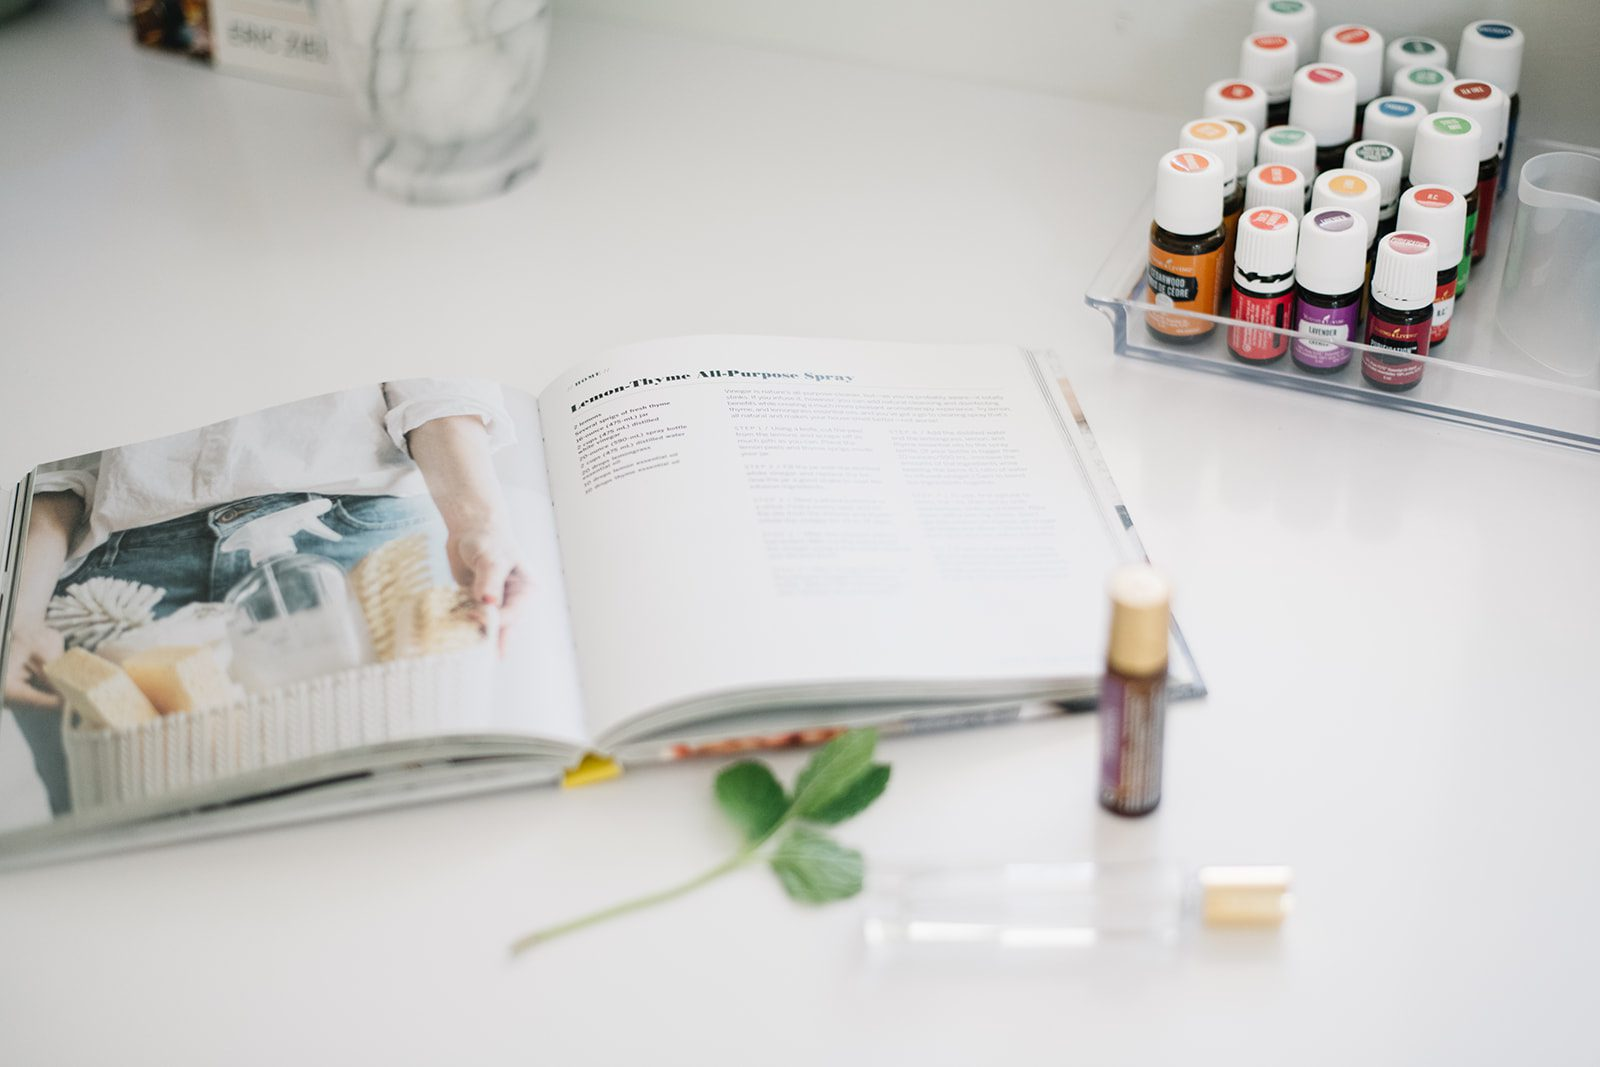 essential oils and book on counter